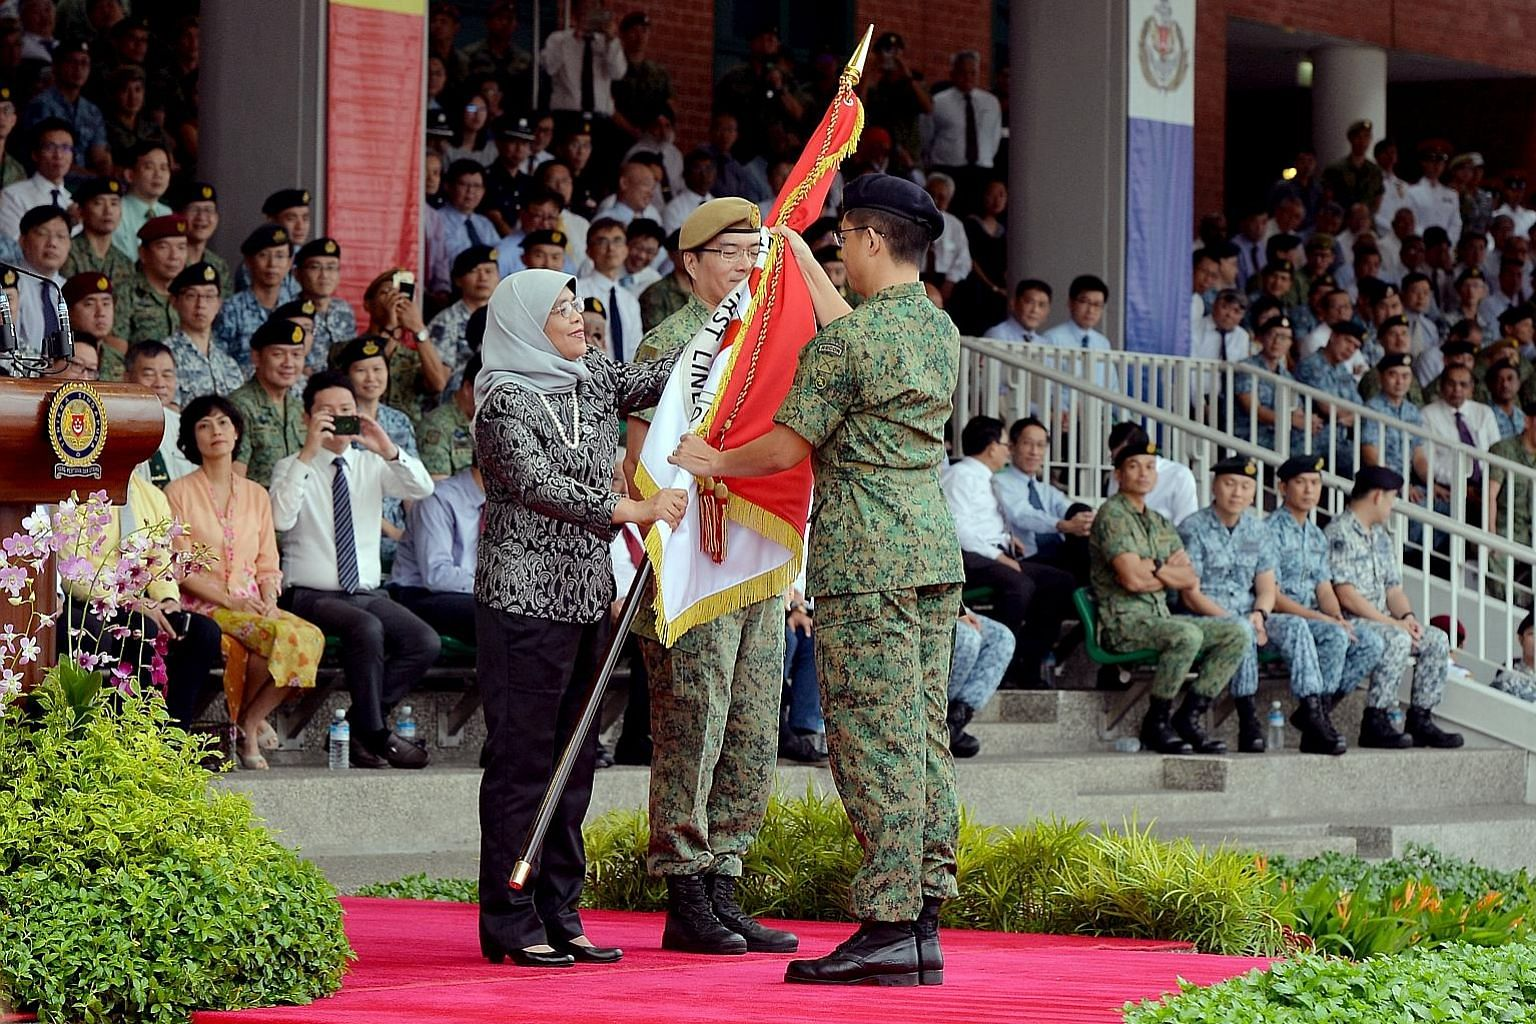 Colonel Paul Cheak, Chief Army Intelligence Officer, receiving the new Regimental Colours from President Halimah Yacob on behalf of the Headquarters Army Intelligence, as the Singapore Armed Forces (SAF) commemorated SAF Day at the Safti Military Ins